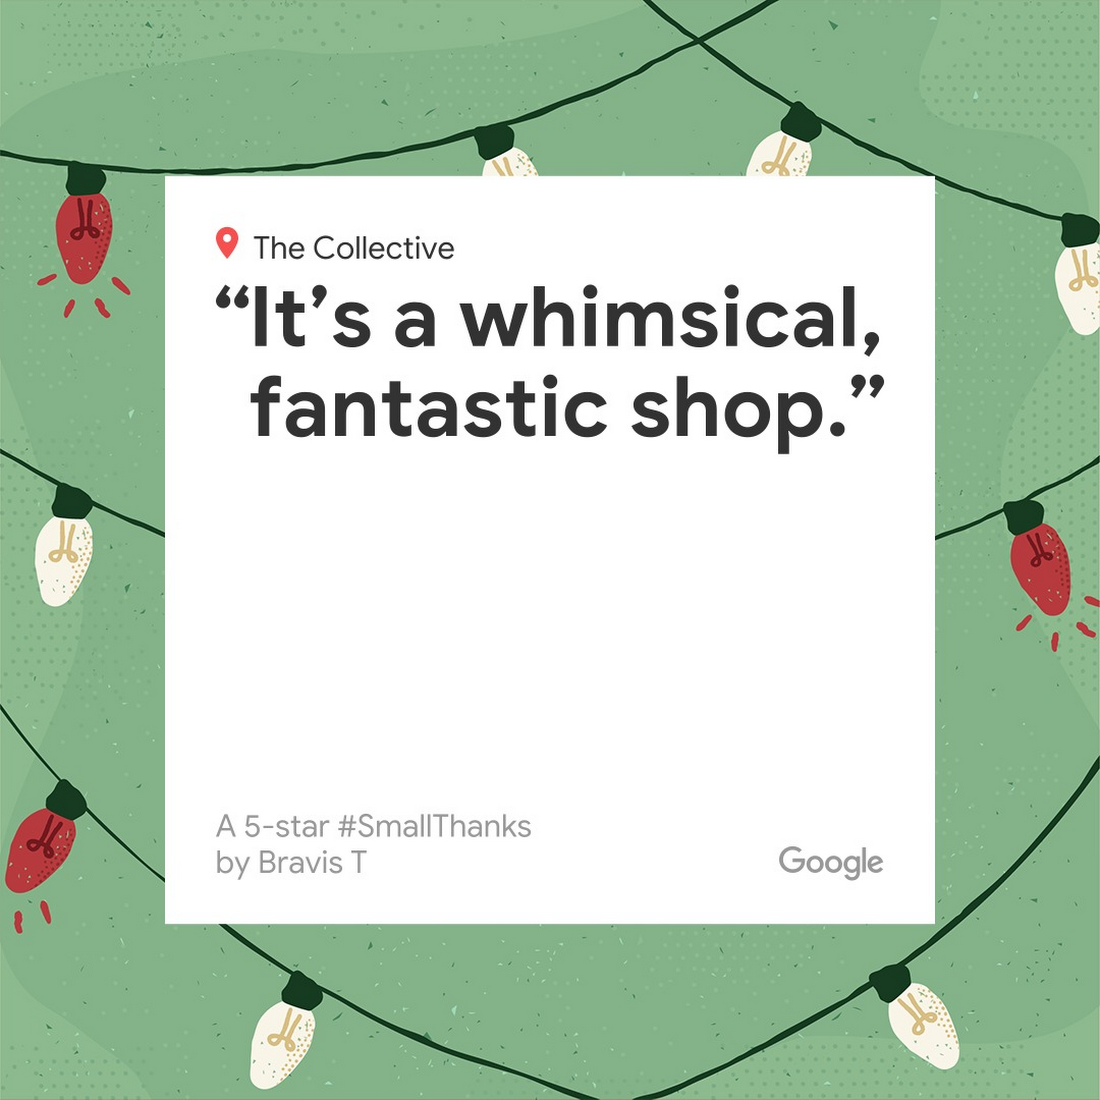 Help your business stand out this holiday season with visuals from Small Thanks